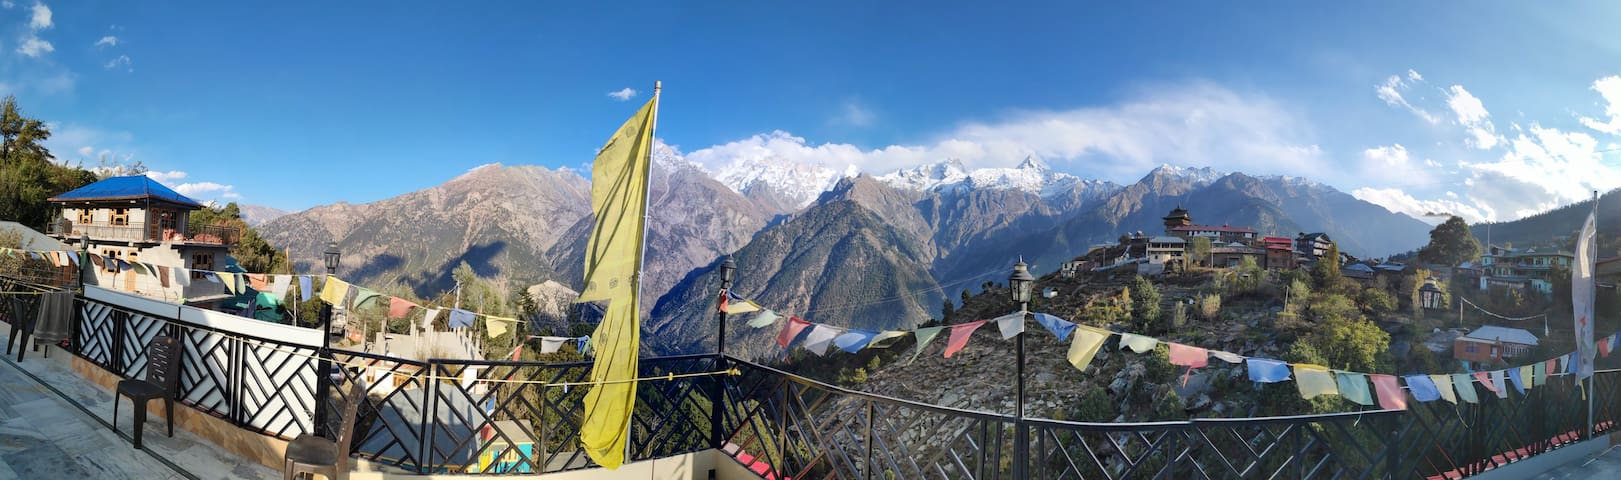 2 Deluxe room | Magical Himalayan view | Kalpa